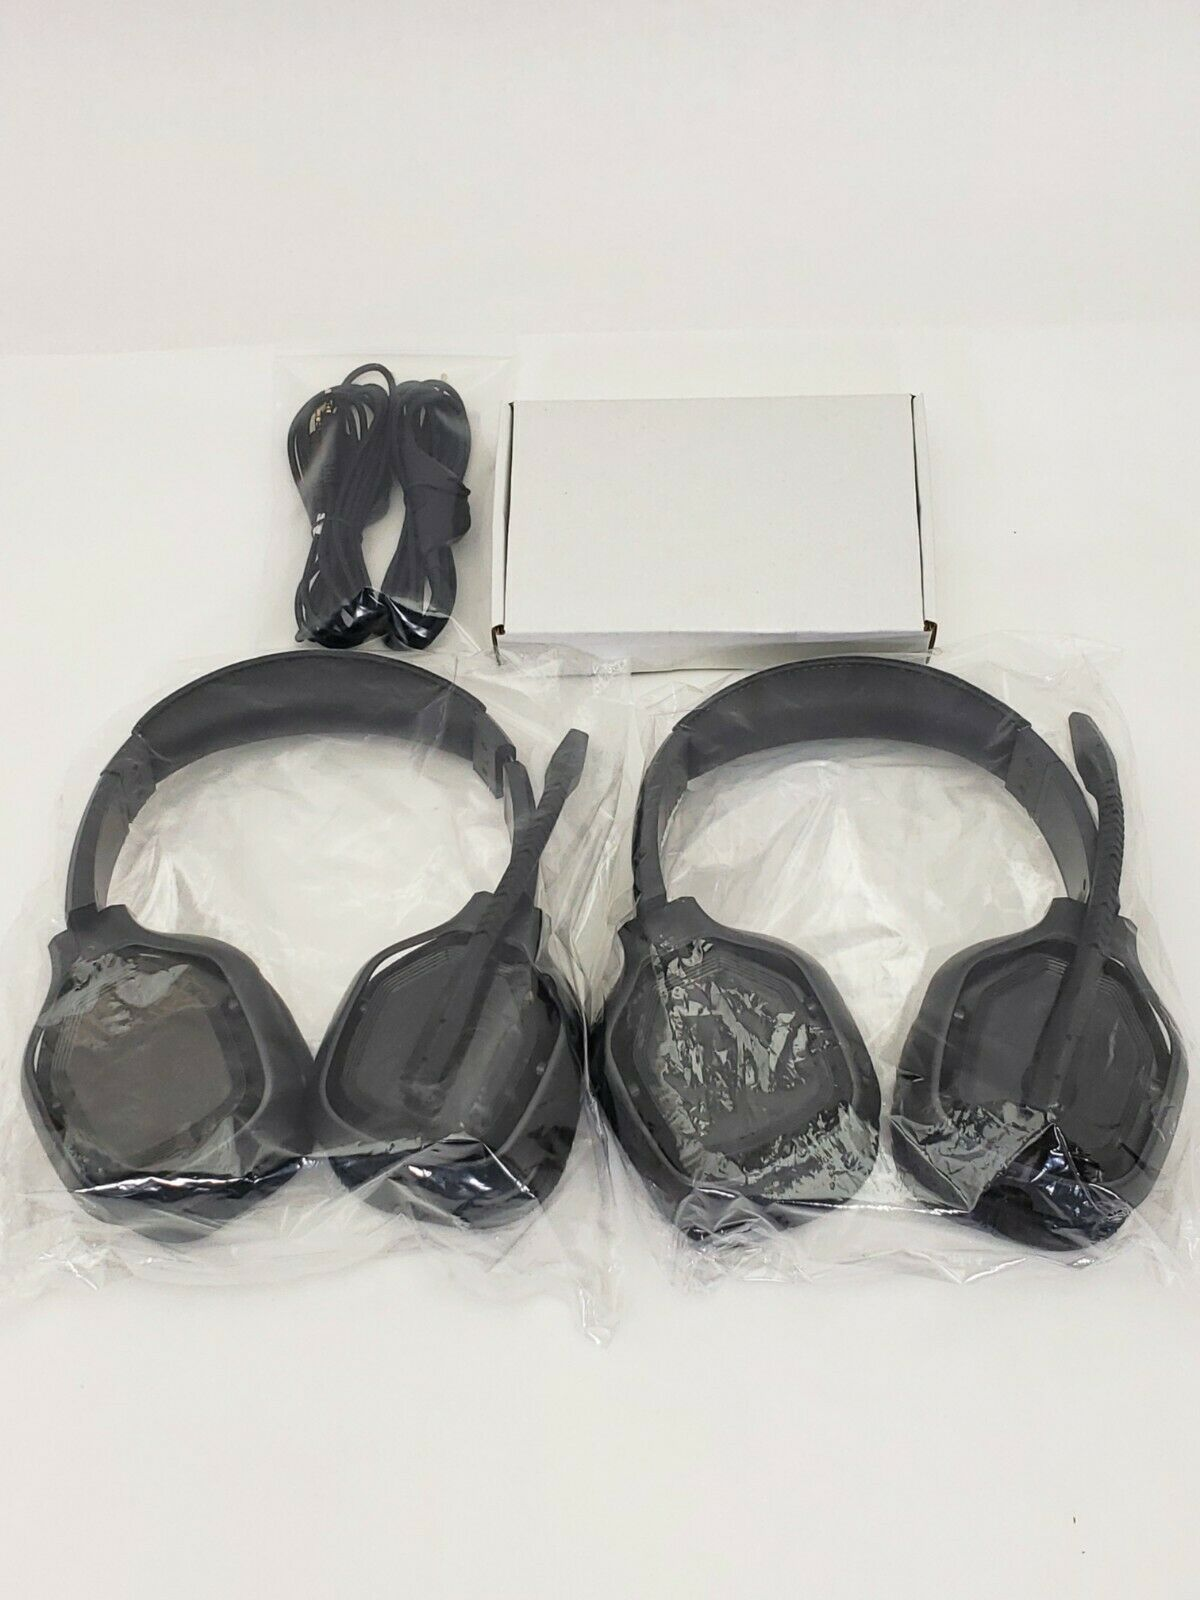 (Lot of 2) - Amazon Basics Pro Gaming Headset -W/ Aux Cable & Controller - Black